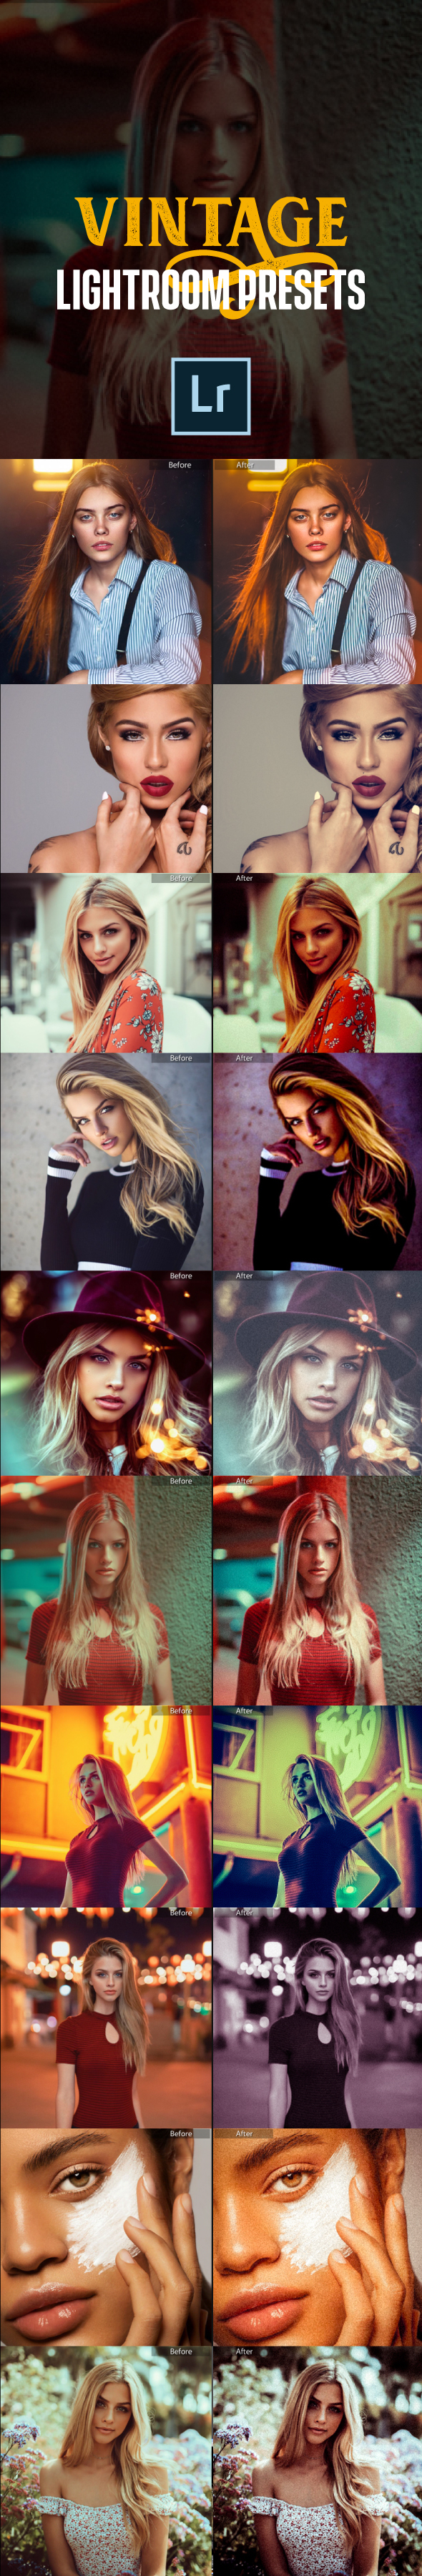 16 Vintage Lightroom Presets - Vintage Lightroom Presets